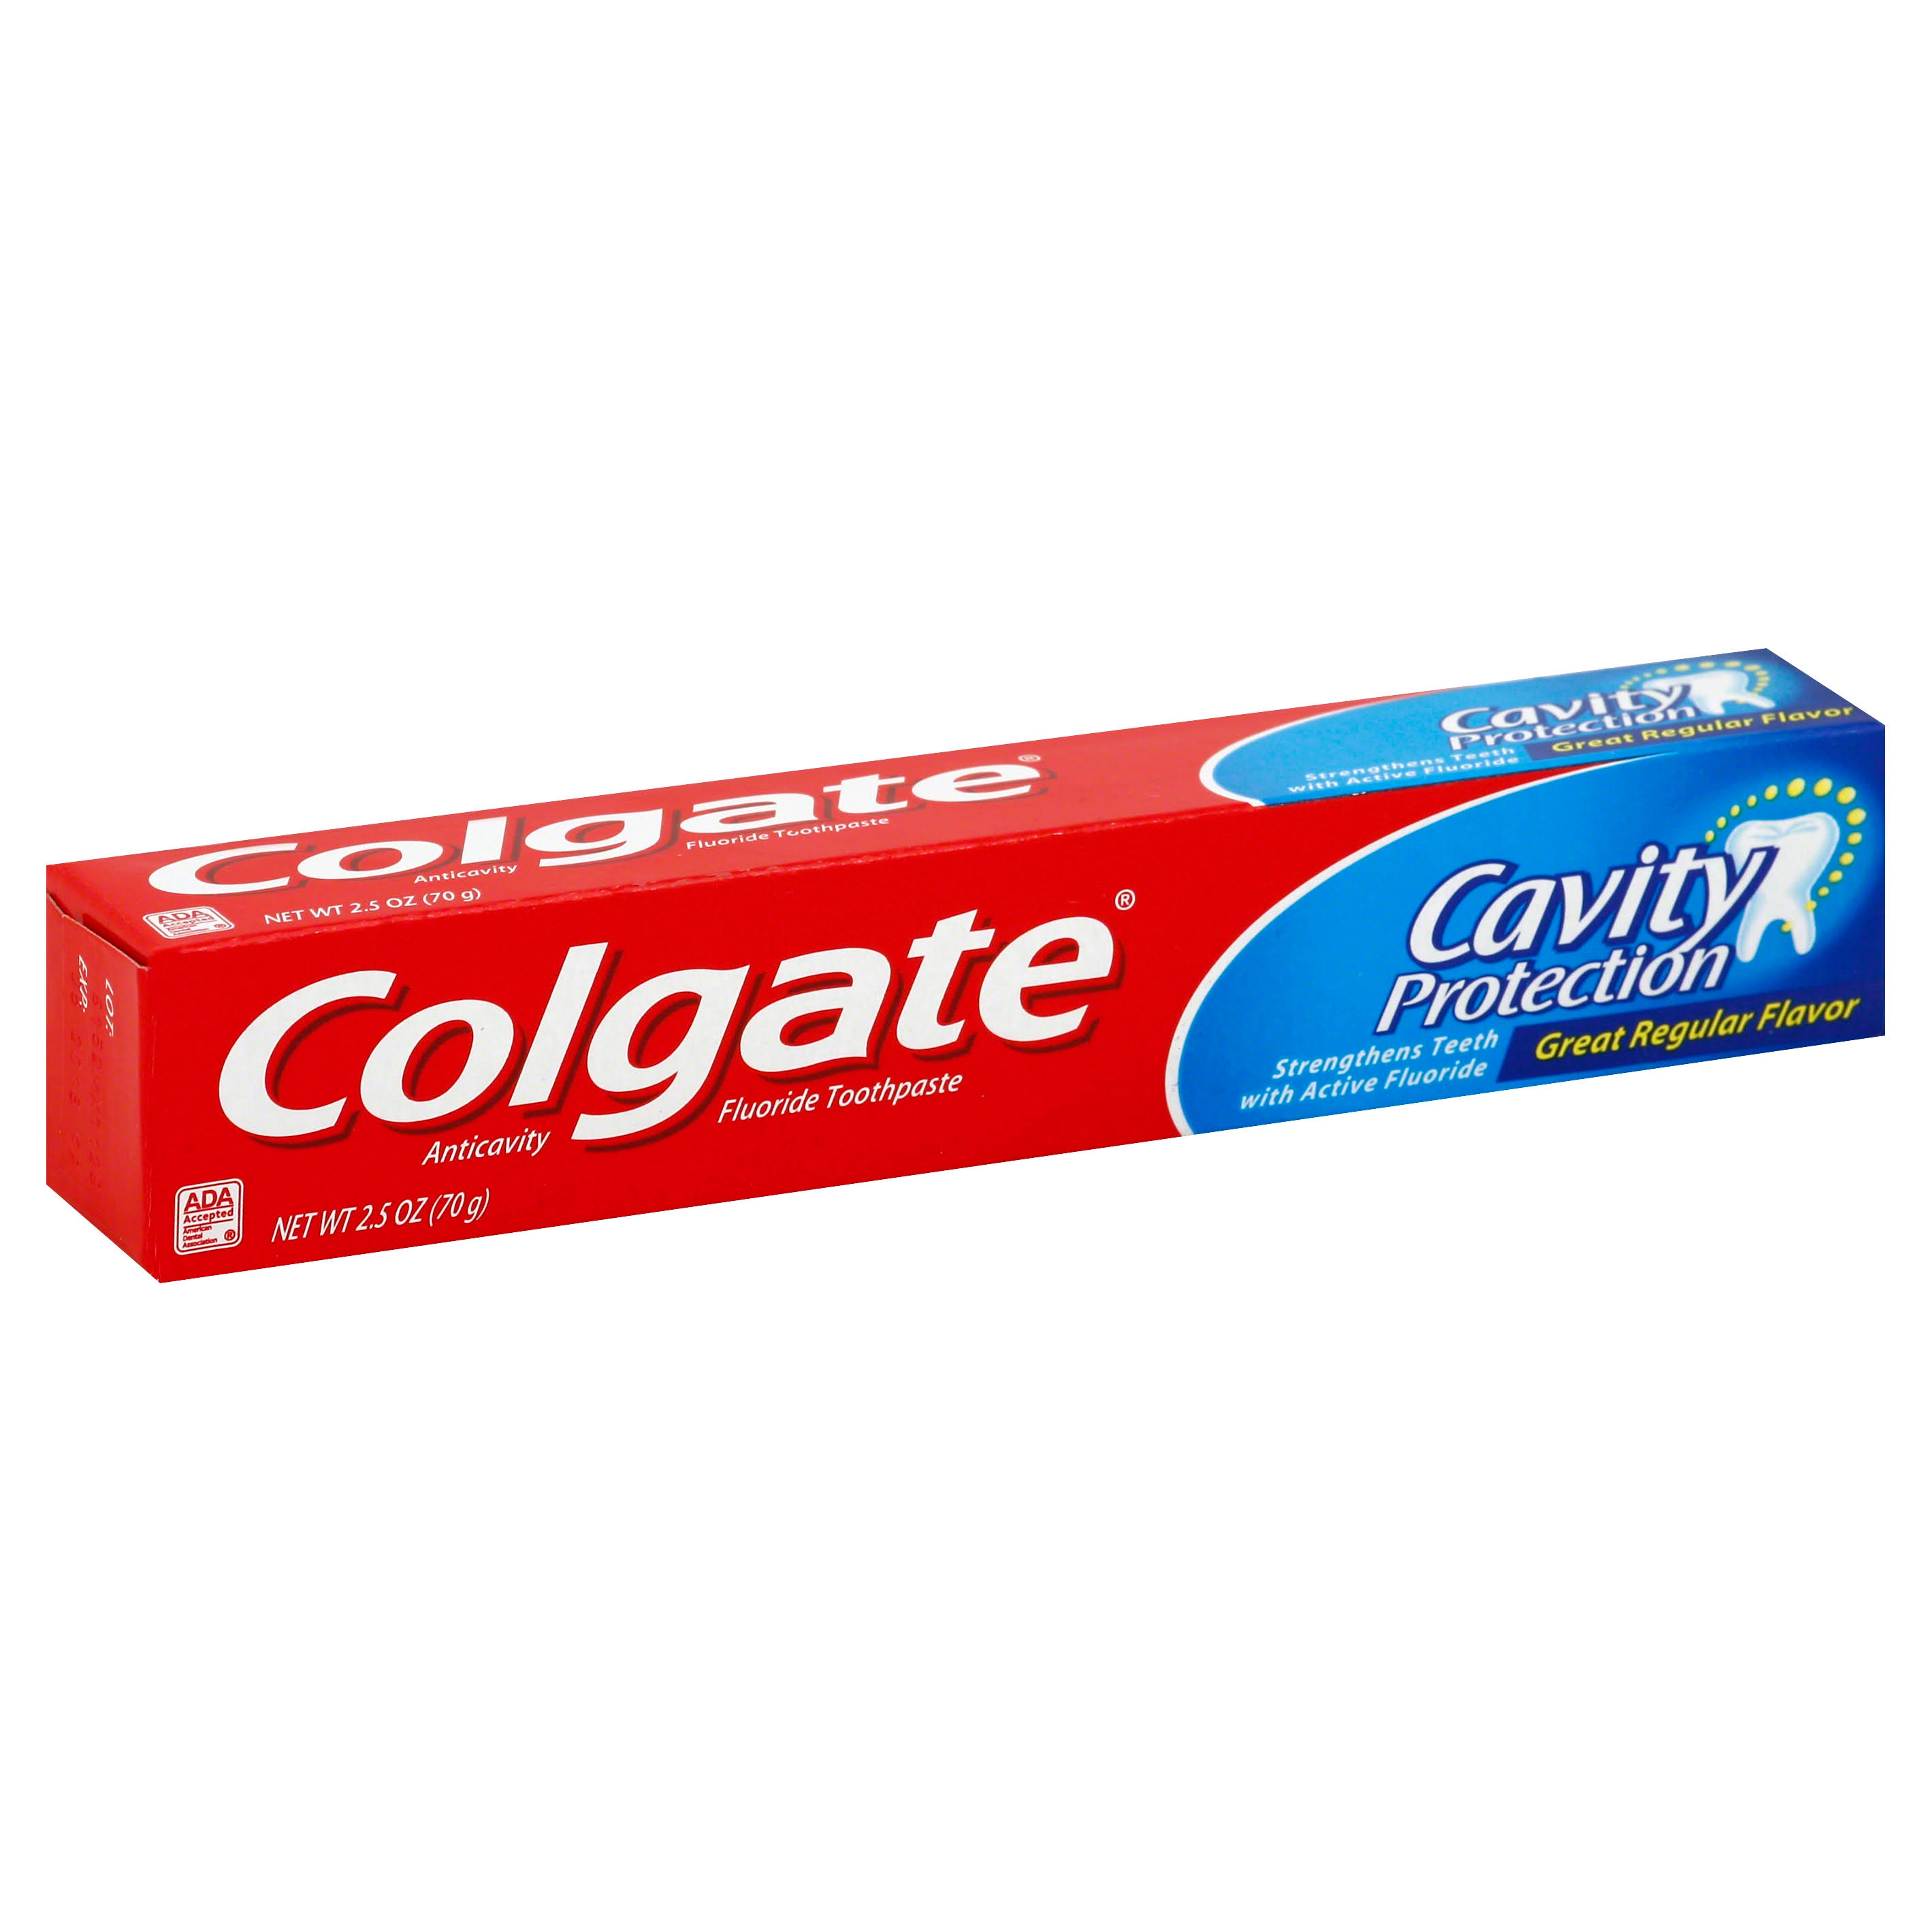 Colgate Cavity Protection Toothpaste - Regular Flavor, 2.5oz